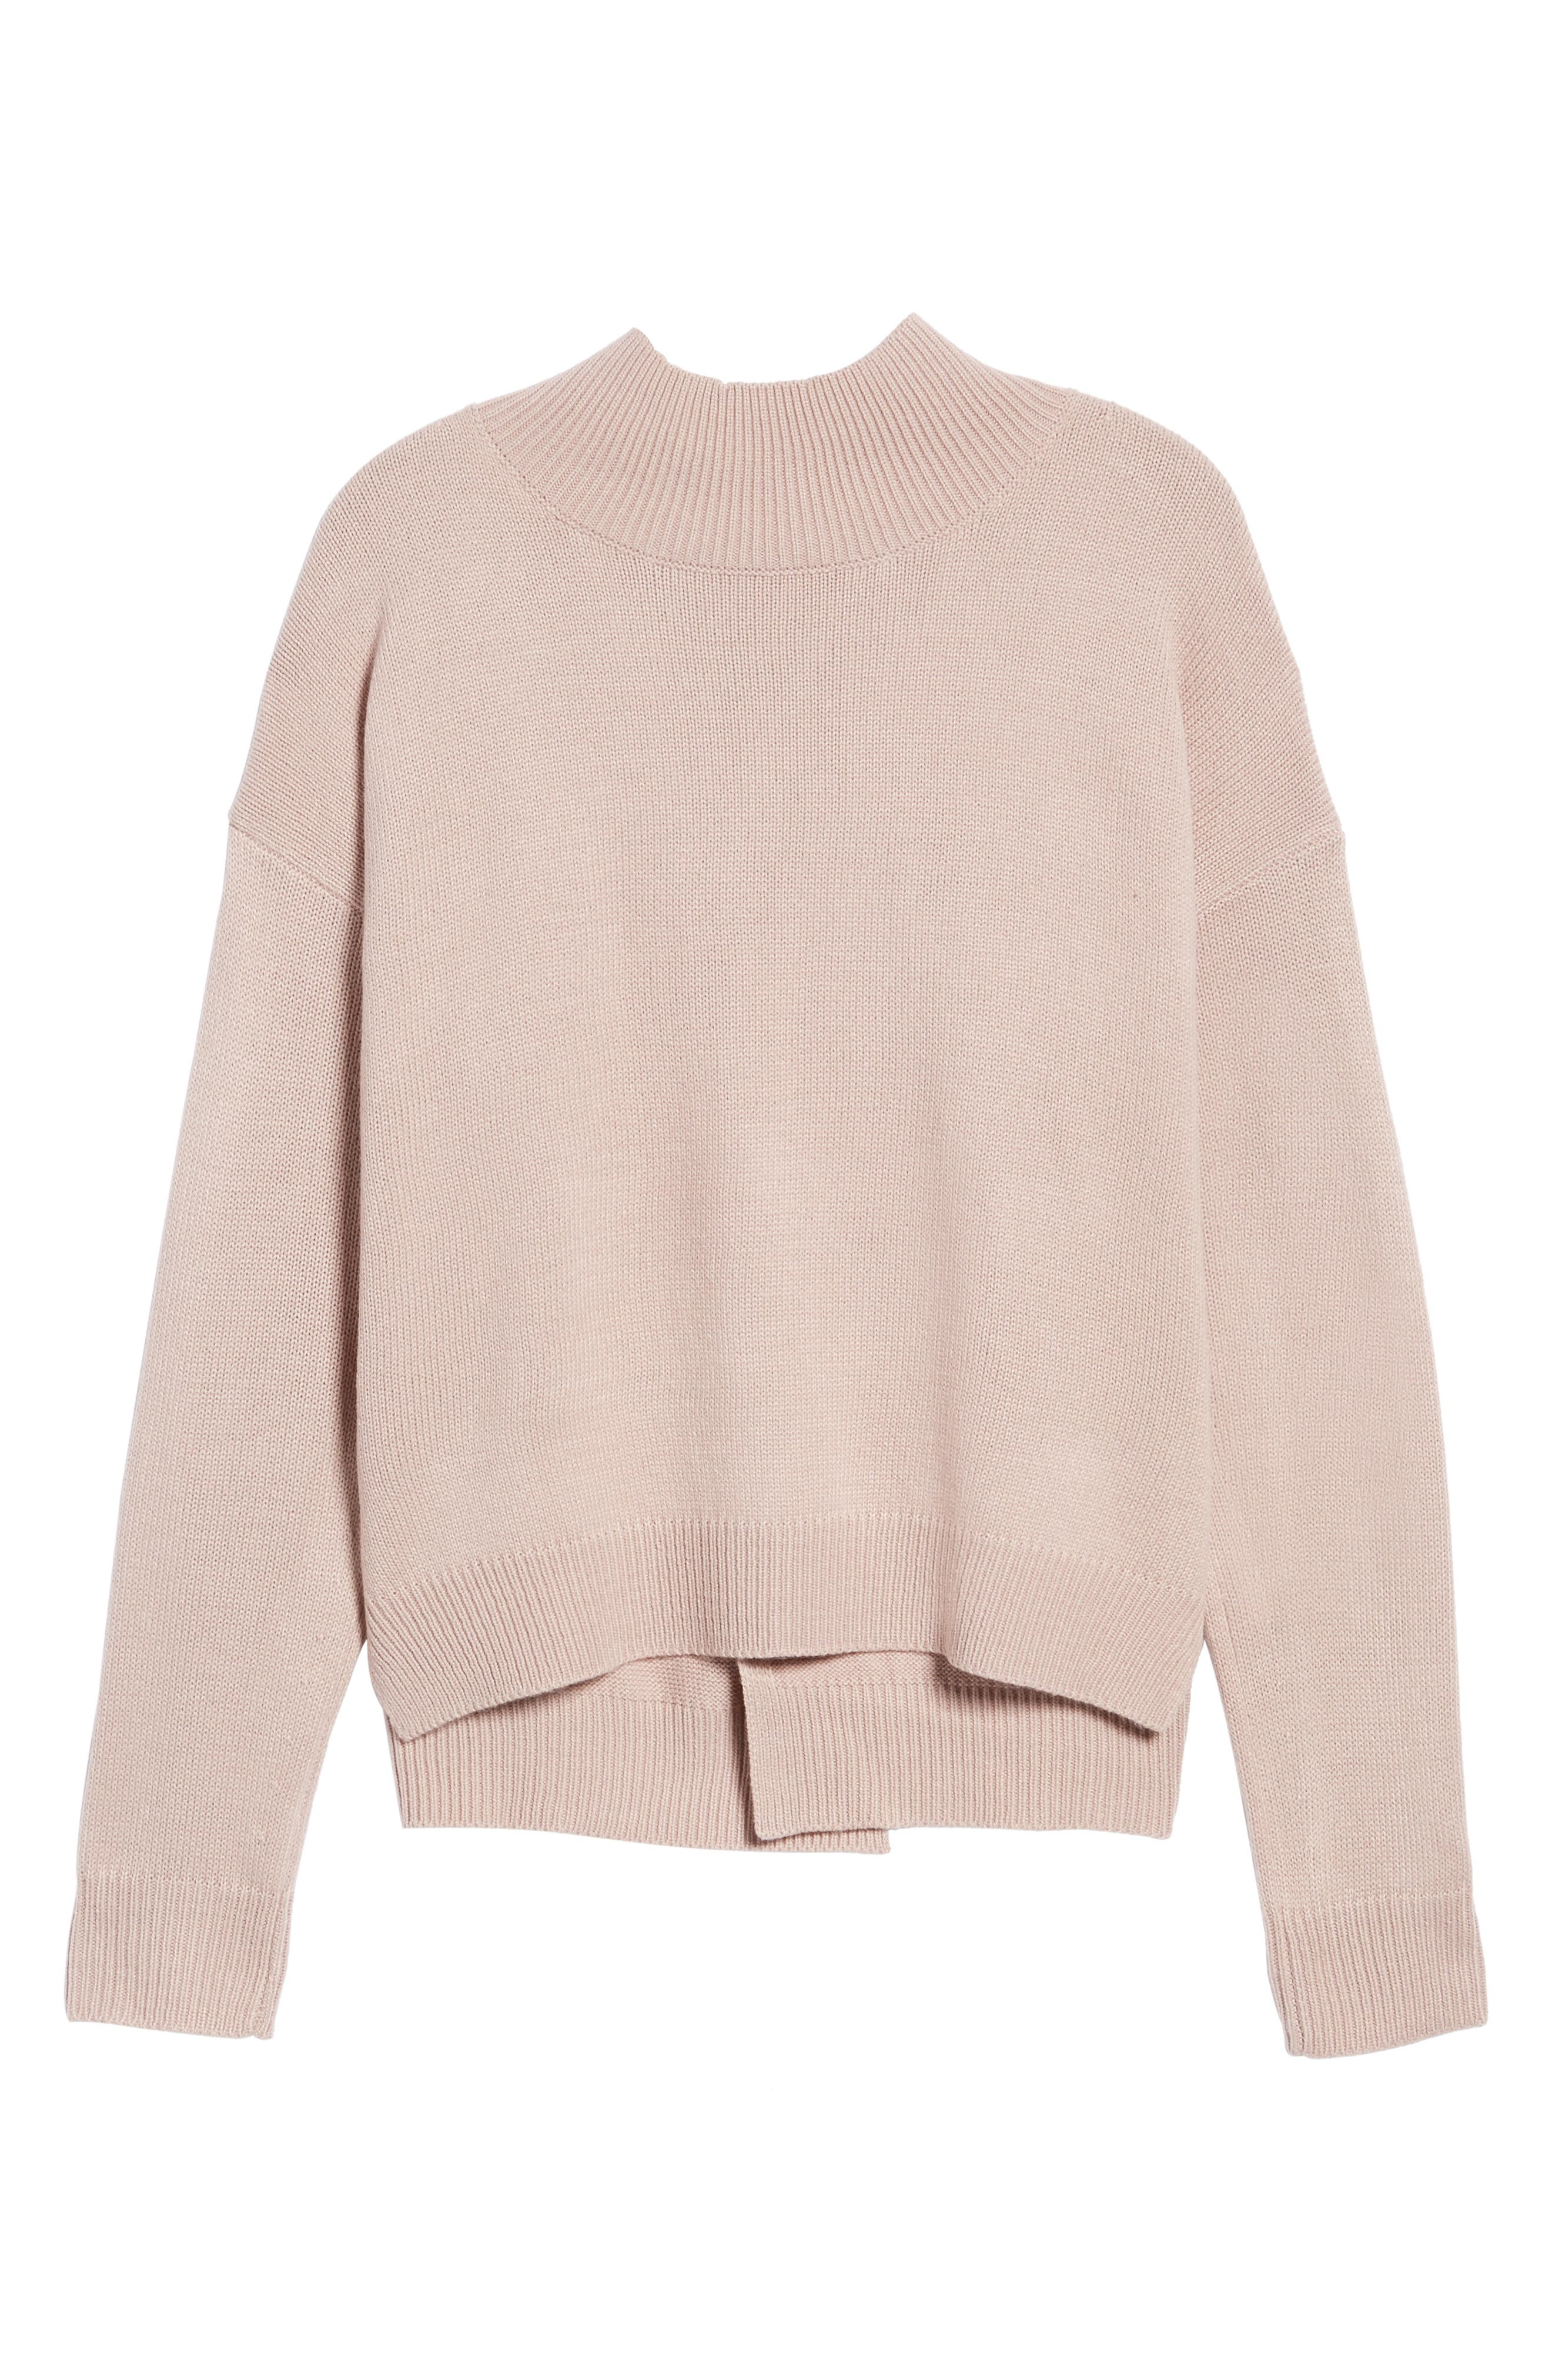 Oversize Sweater,                             Alternate thumbnail 6, color,                             Pink